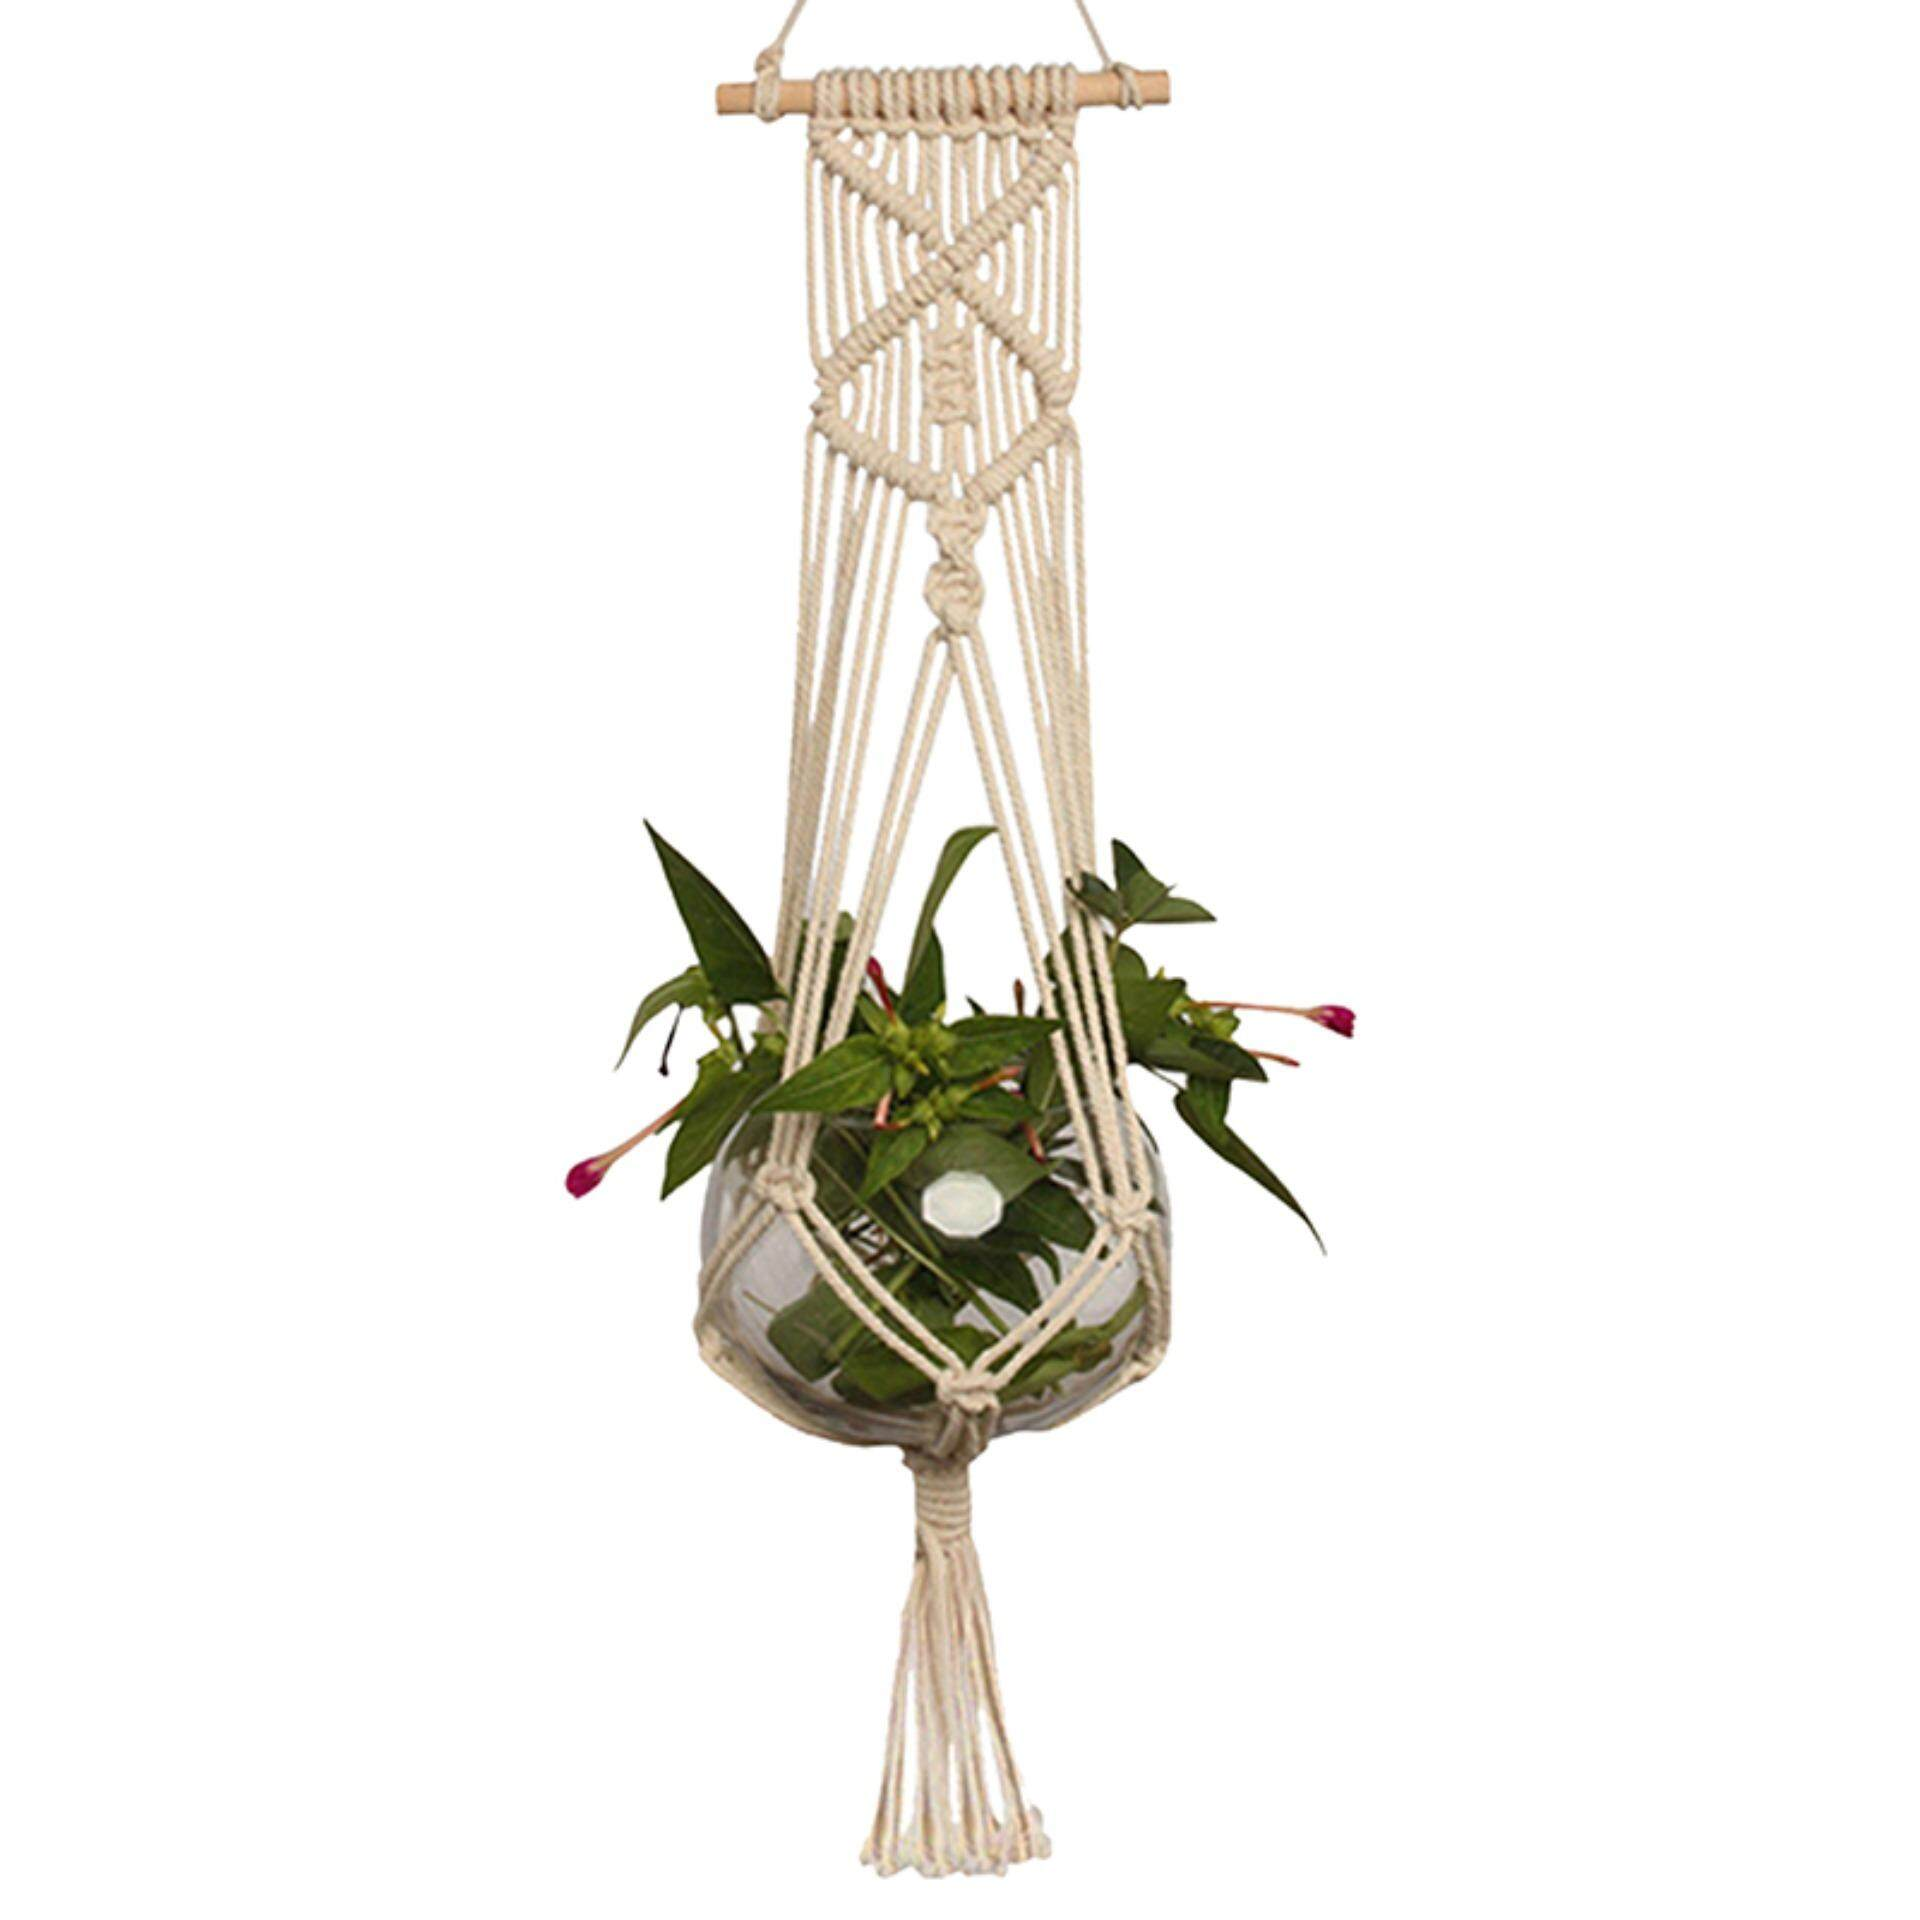 Veli shy Pot Holder Macrame Plant Hanger Hanging Planter Basket Jute Rope Braided Craft